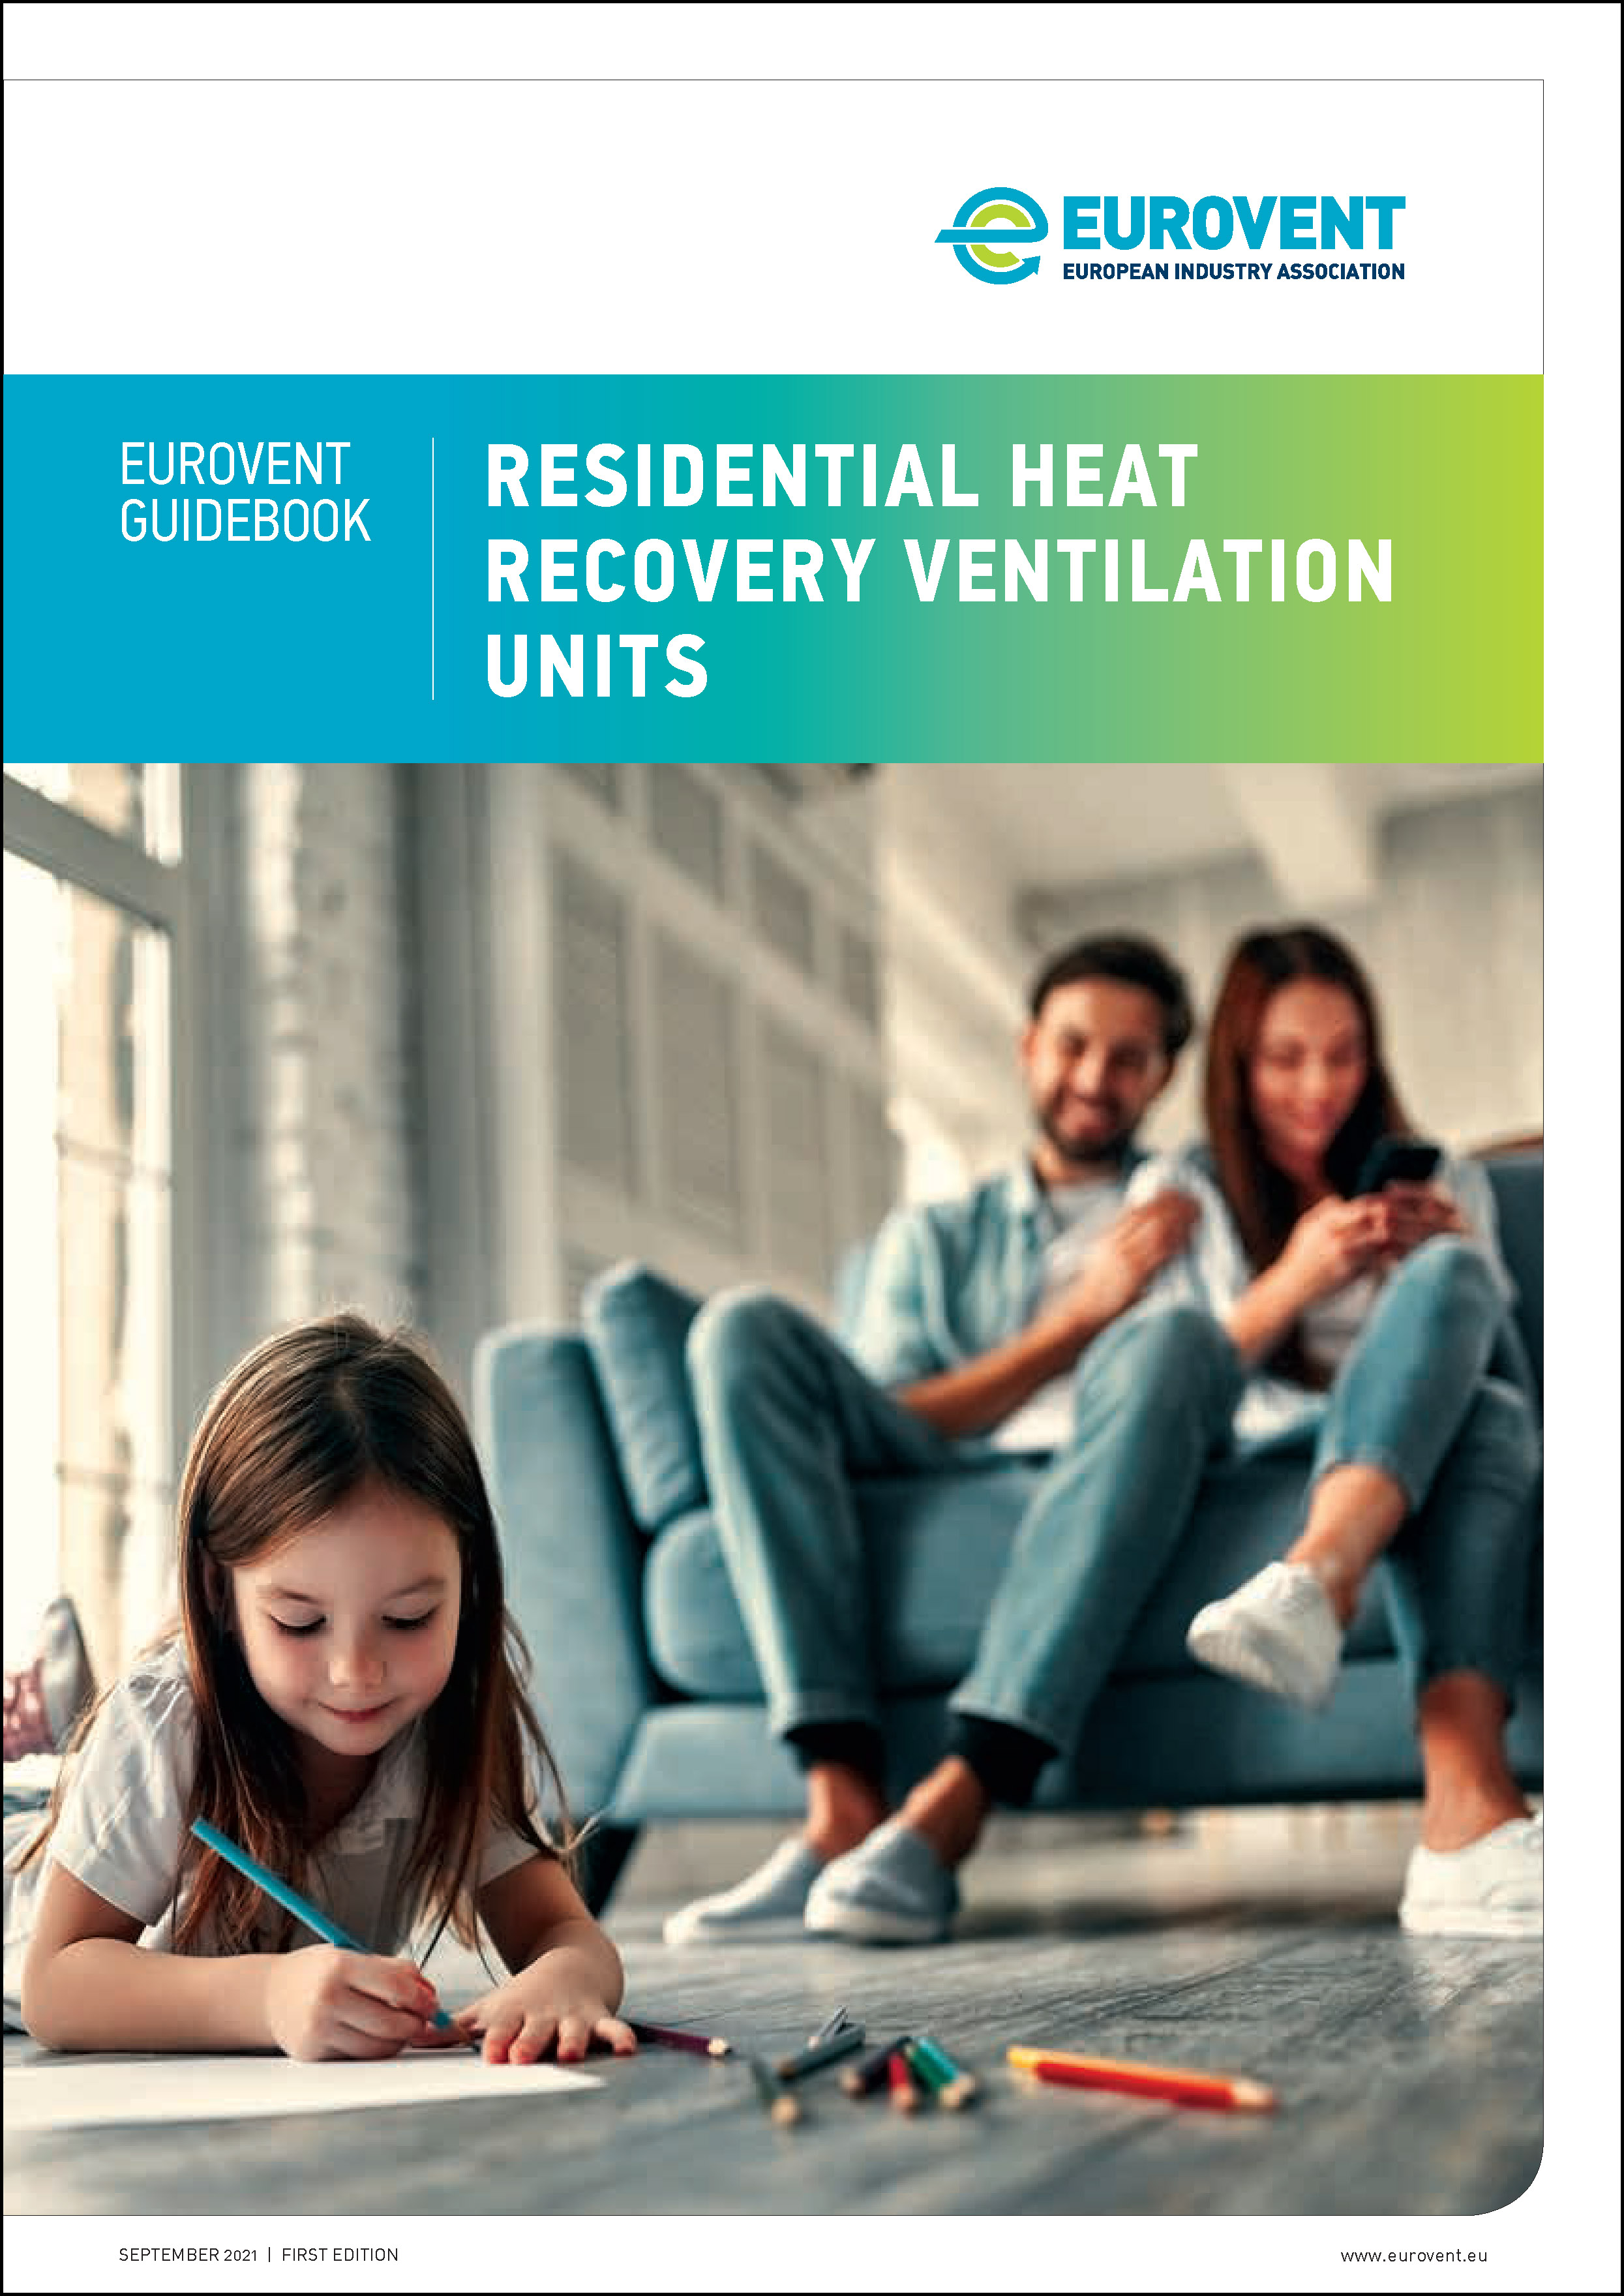 2021 - Eurovent Residential Heat Recovery Ventilation Units Guidebook